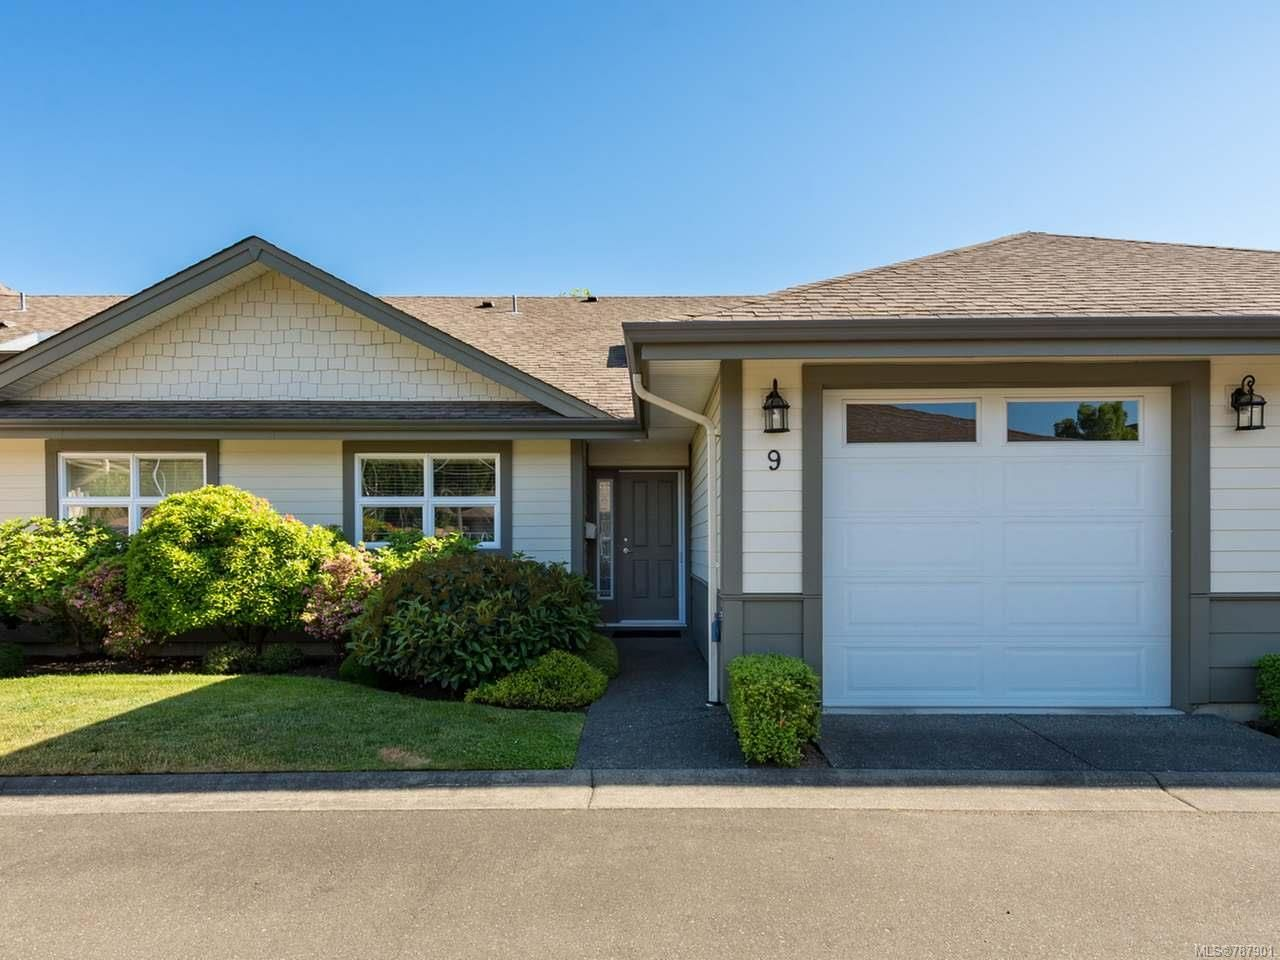 Main Photo: 9 1285 Guthrie Rd in COMOX: CV Comox (Town of) Row/Townhouse for sale (Comox Valley)  : MLS®# 787901